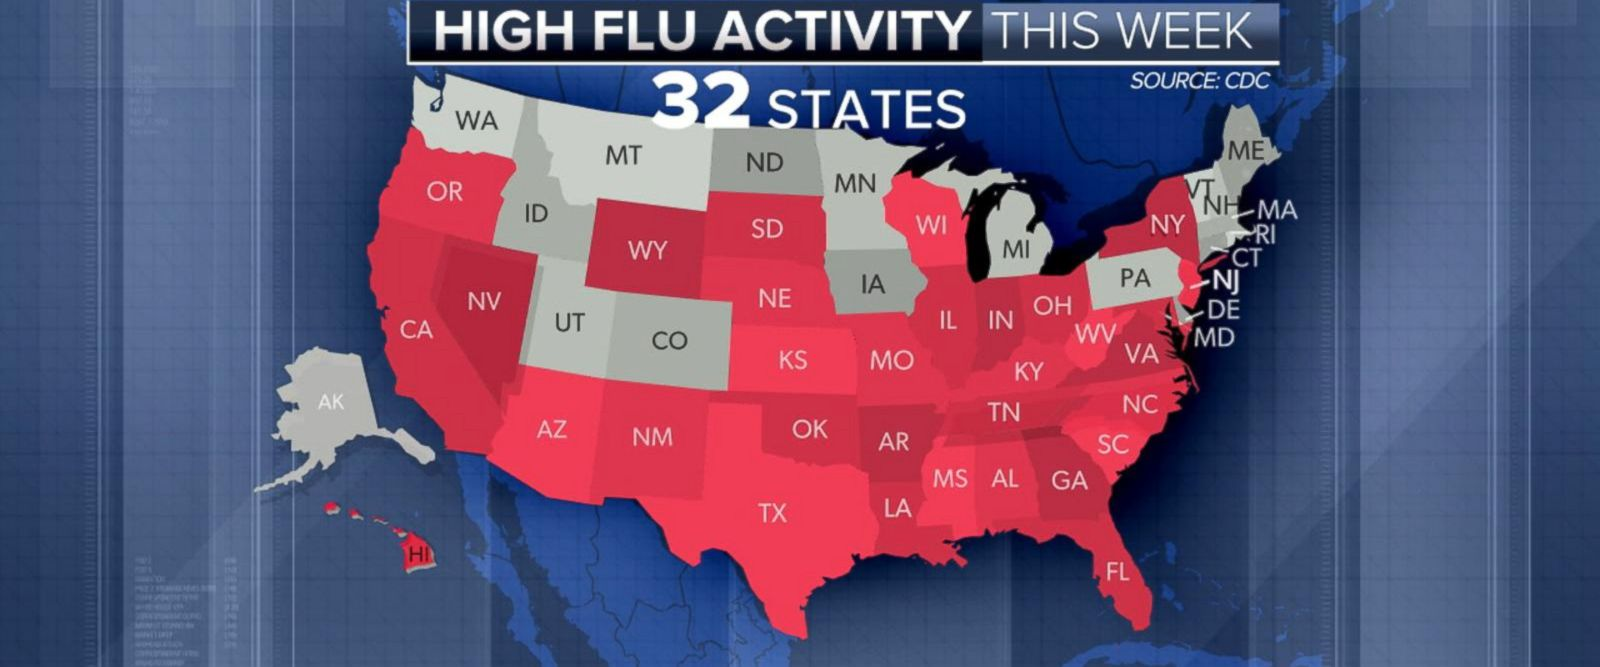 VIDEO: New CDC numbers show the flu is still spreading wildly